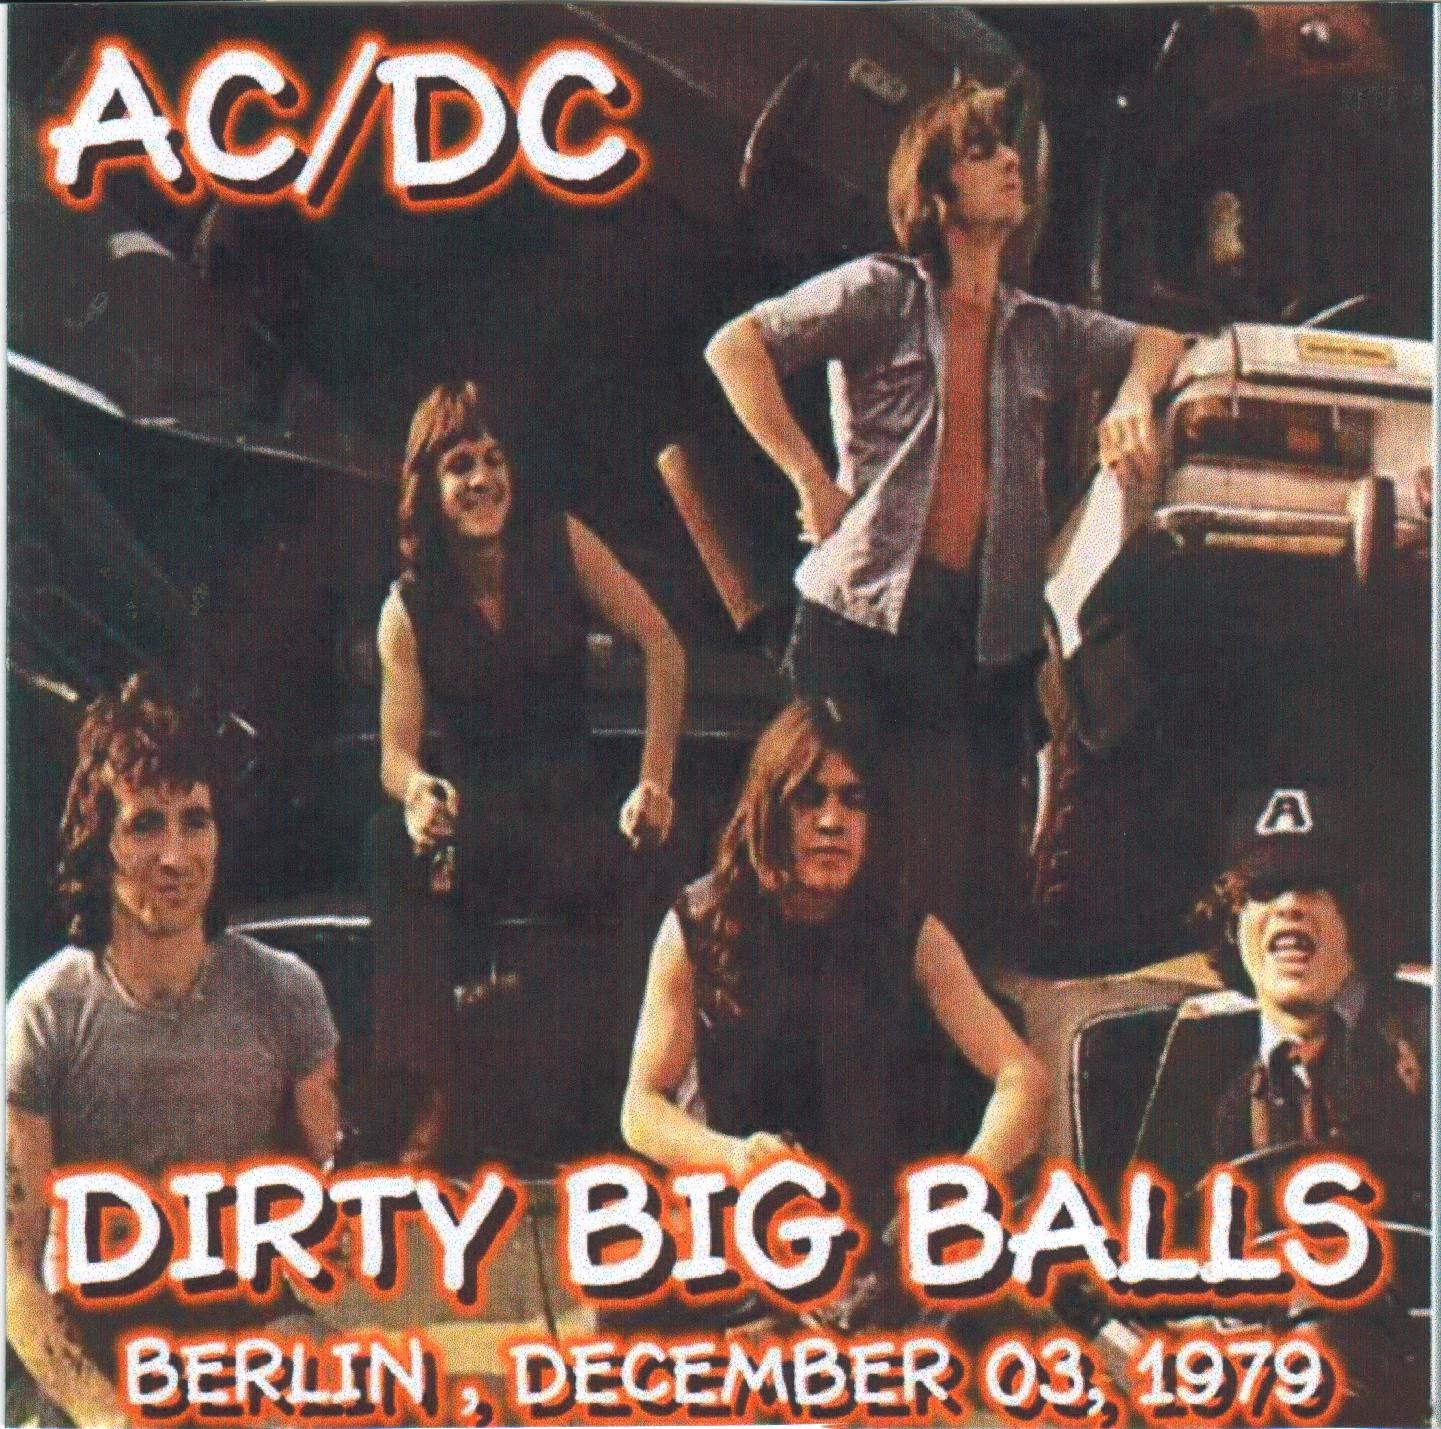 Acdc Big Balls Video Mp3 3GP Mp4 HD Download